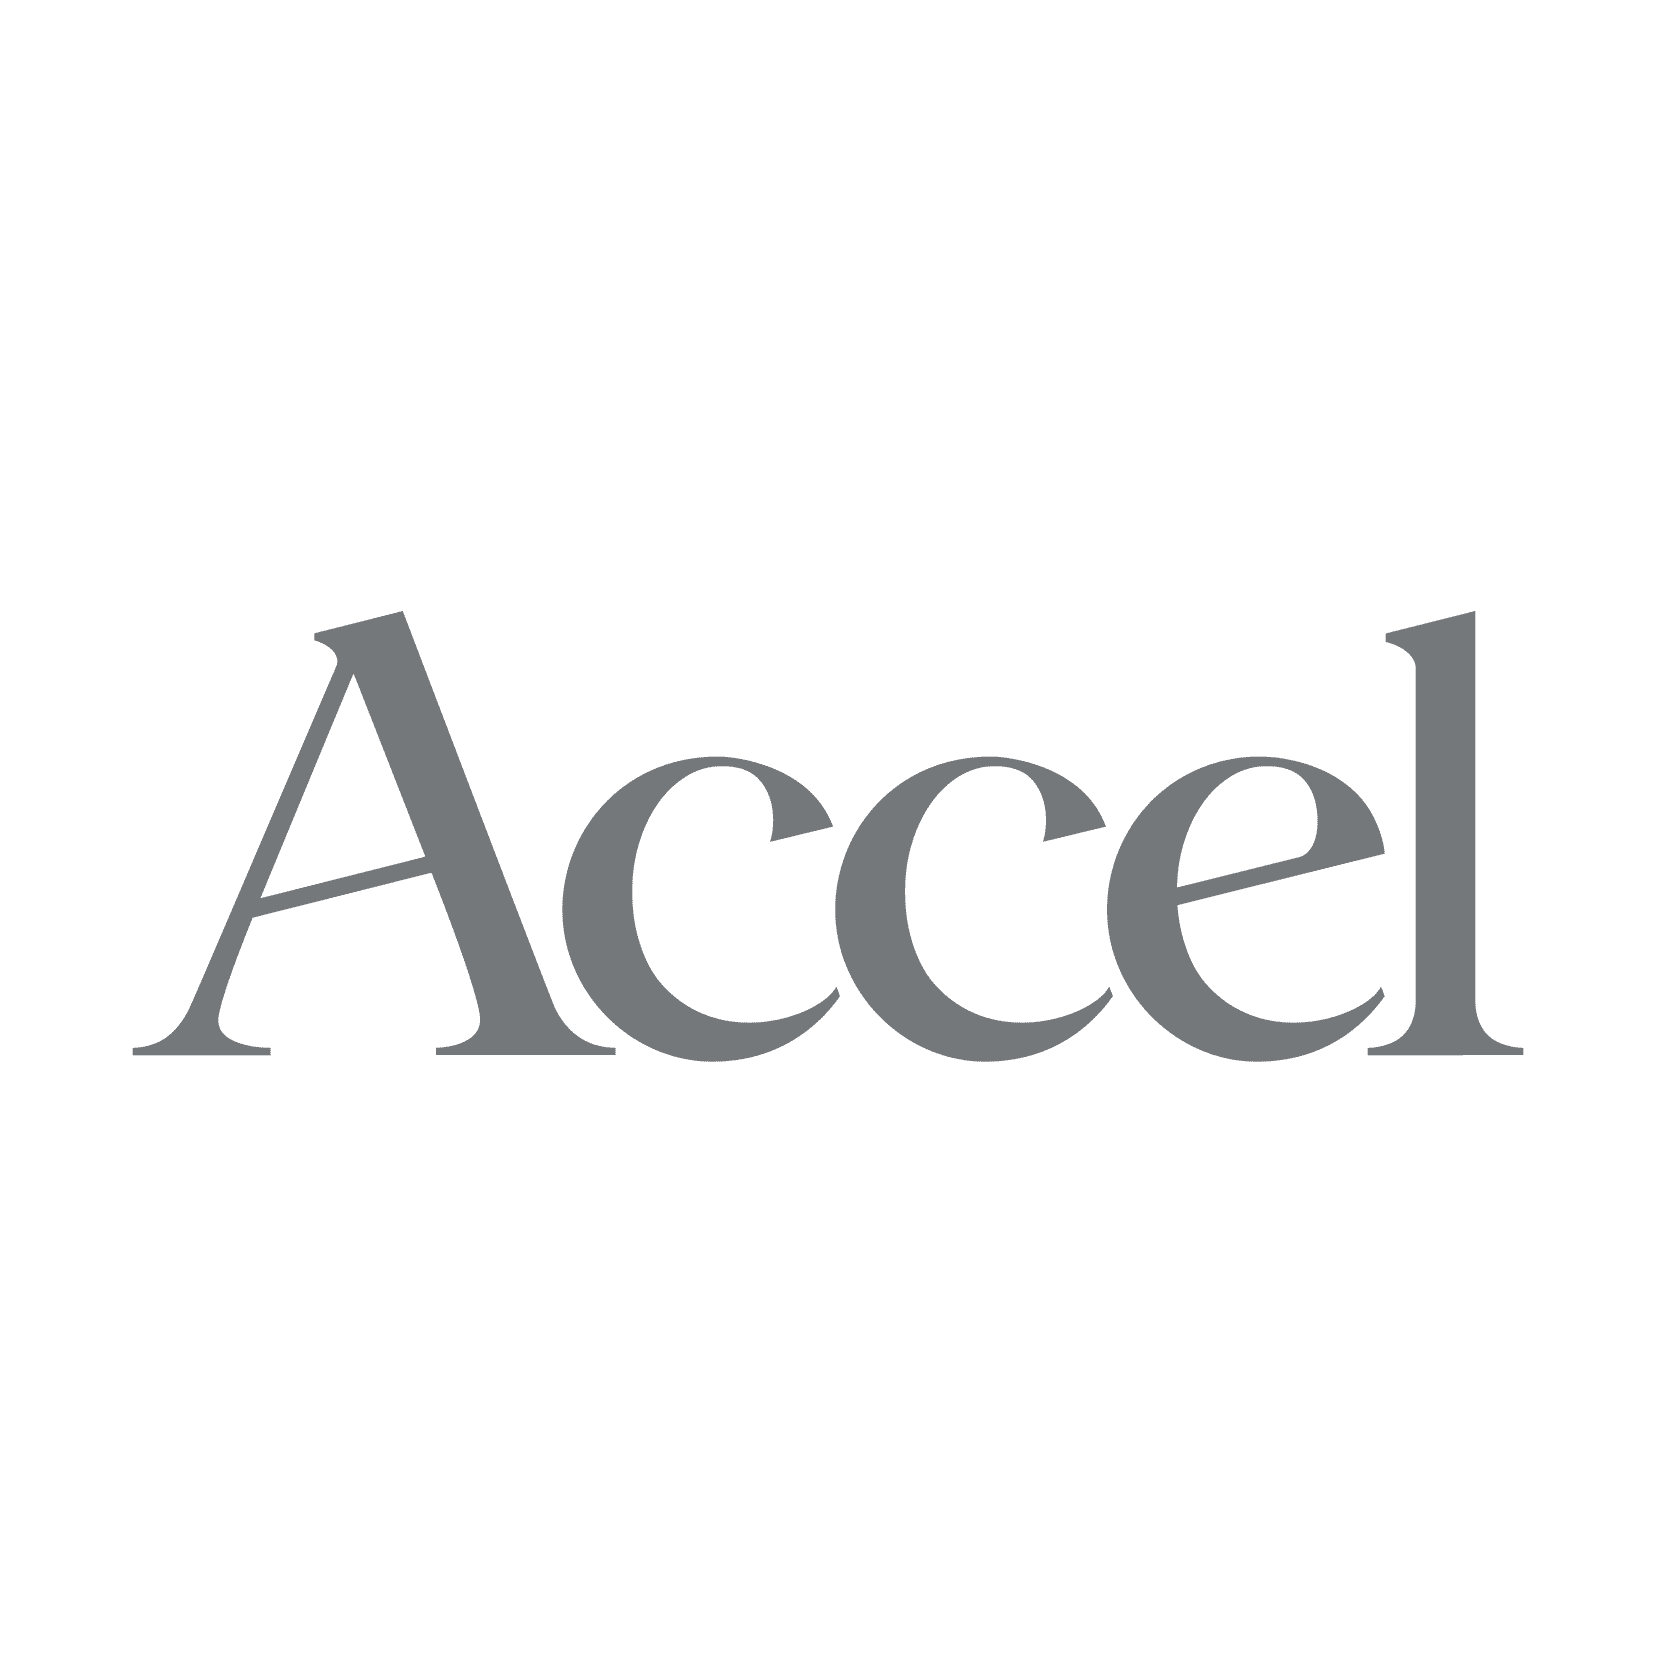 Accel - Crunchbase Investor Profile & Investments